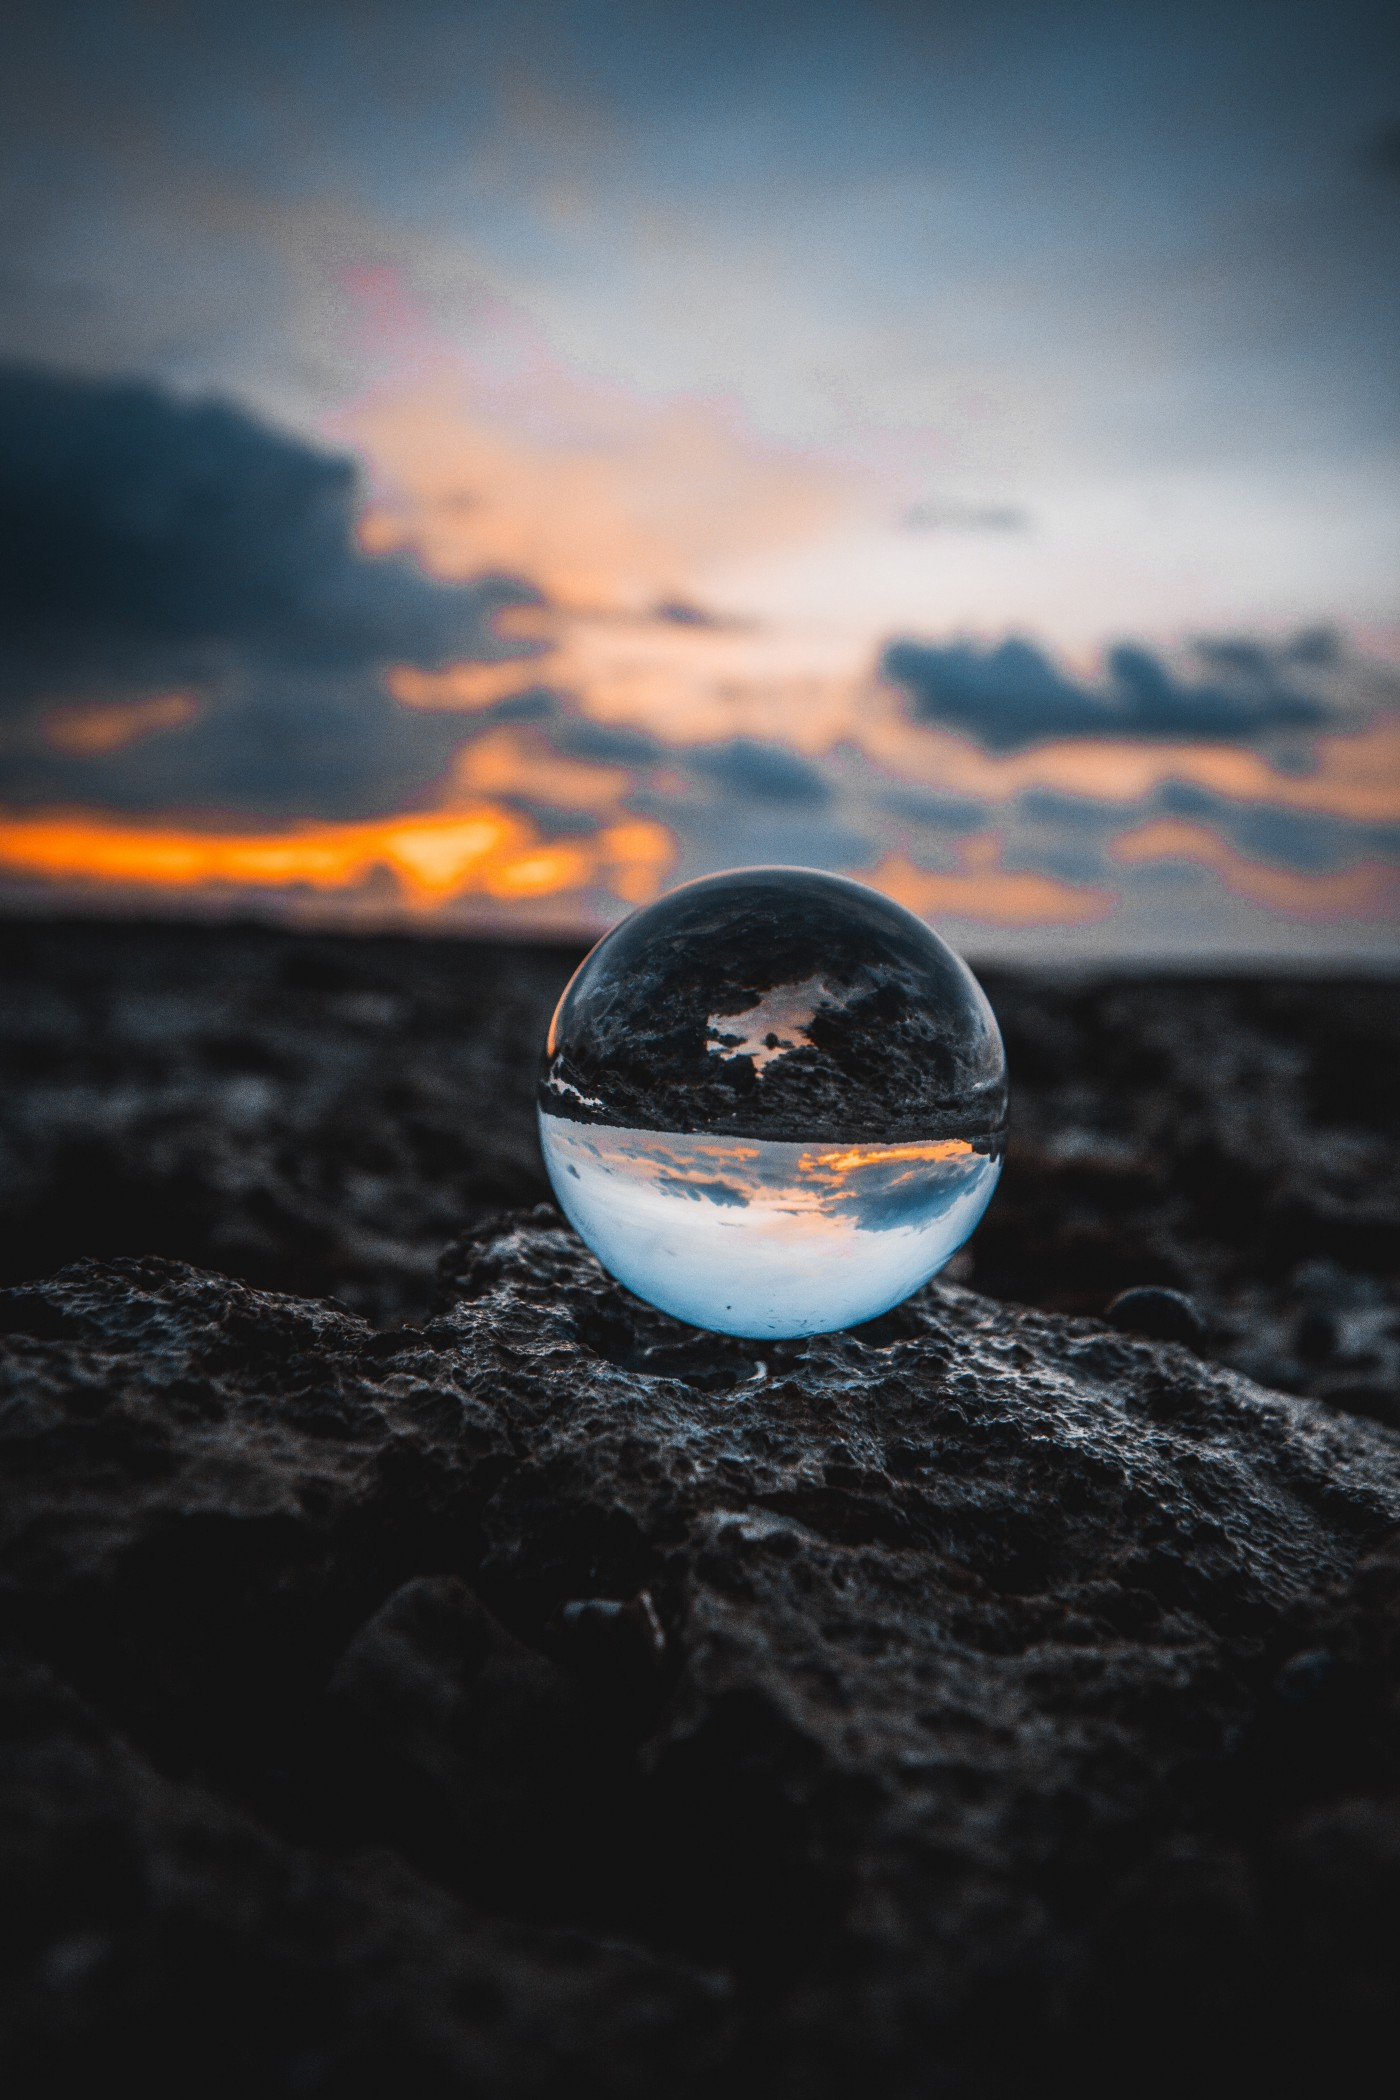 see through globe on rocks Photo by Louis Maniquet